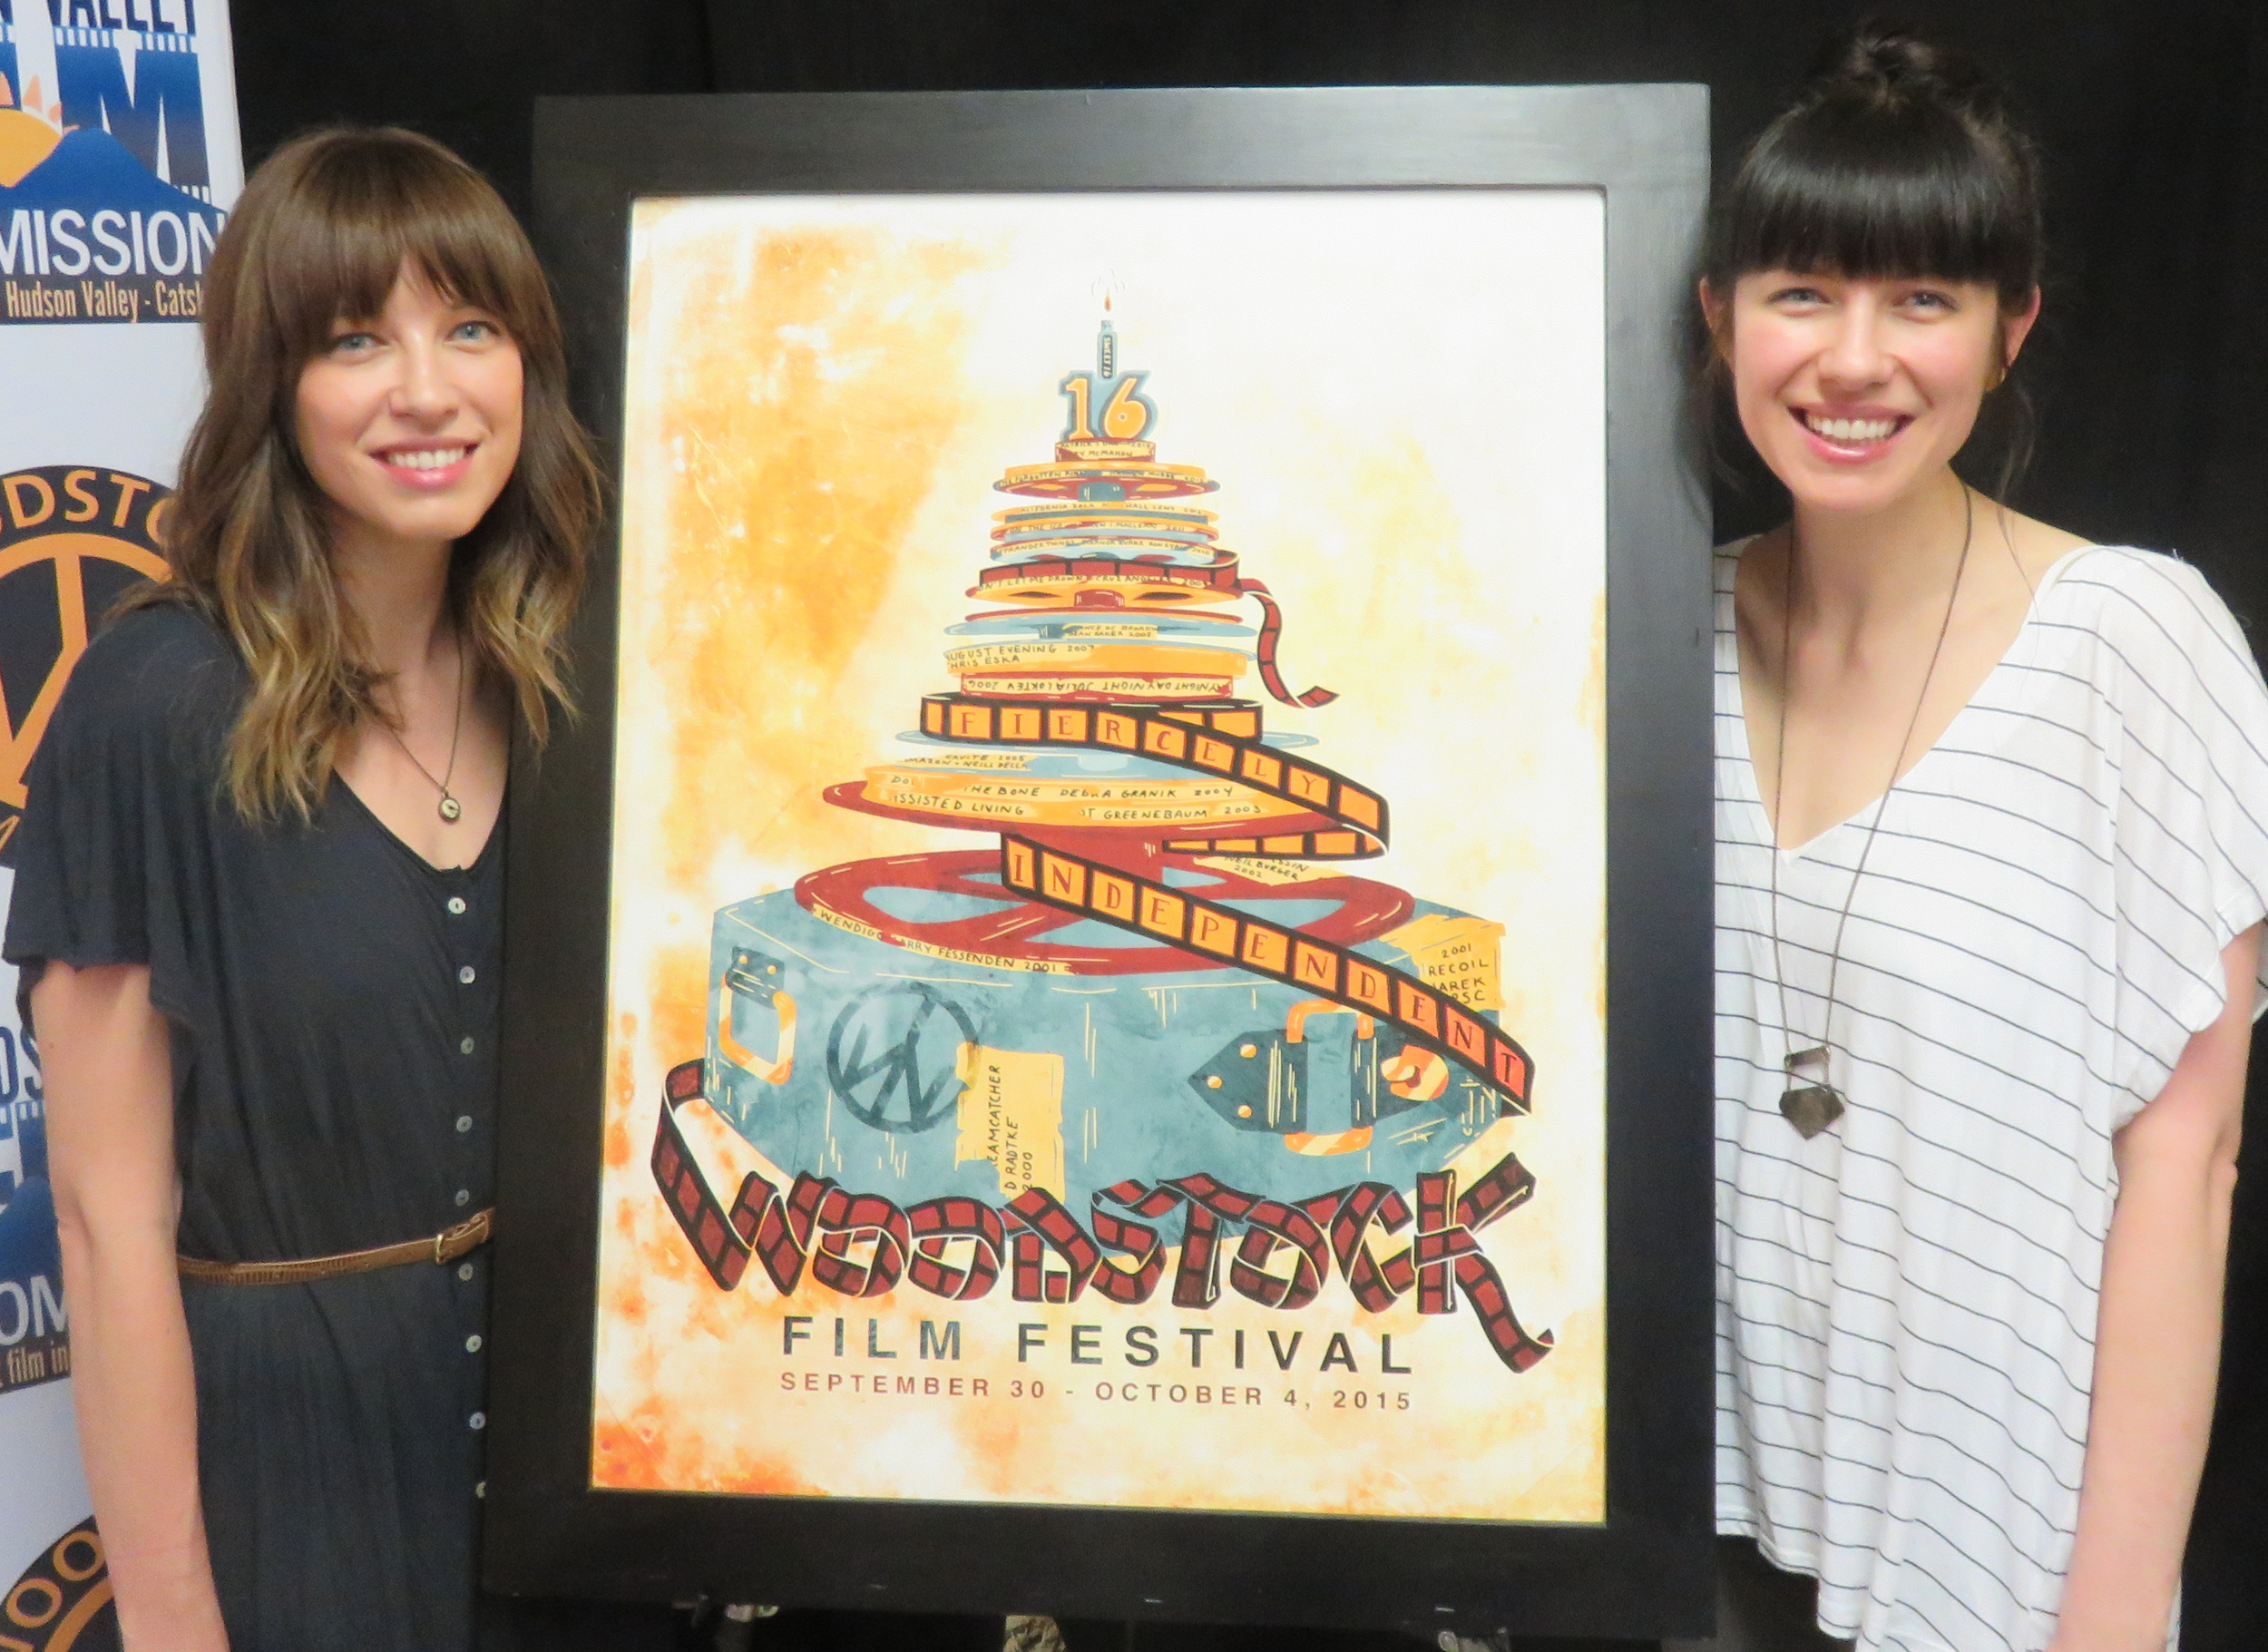 Joy + Noelle showing off the 2015 Woodstock Film Festival poster, designed by them